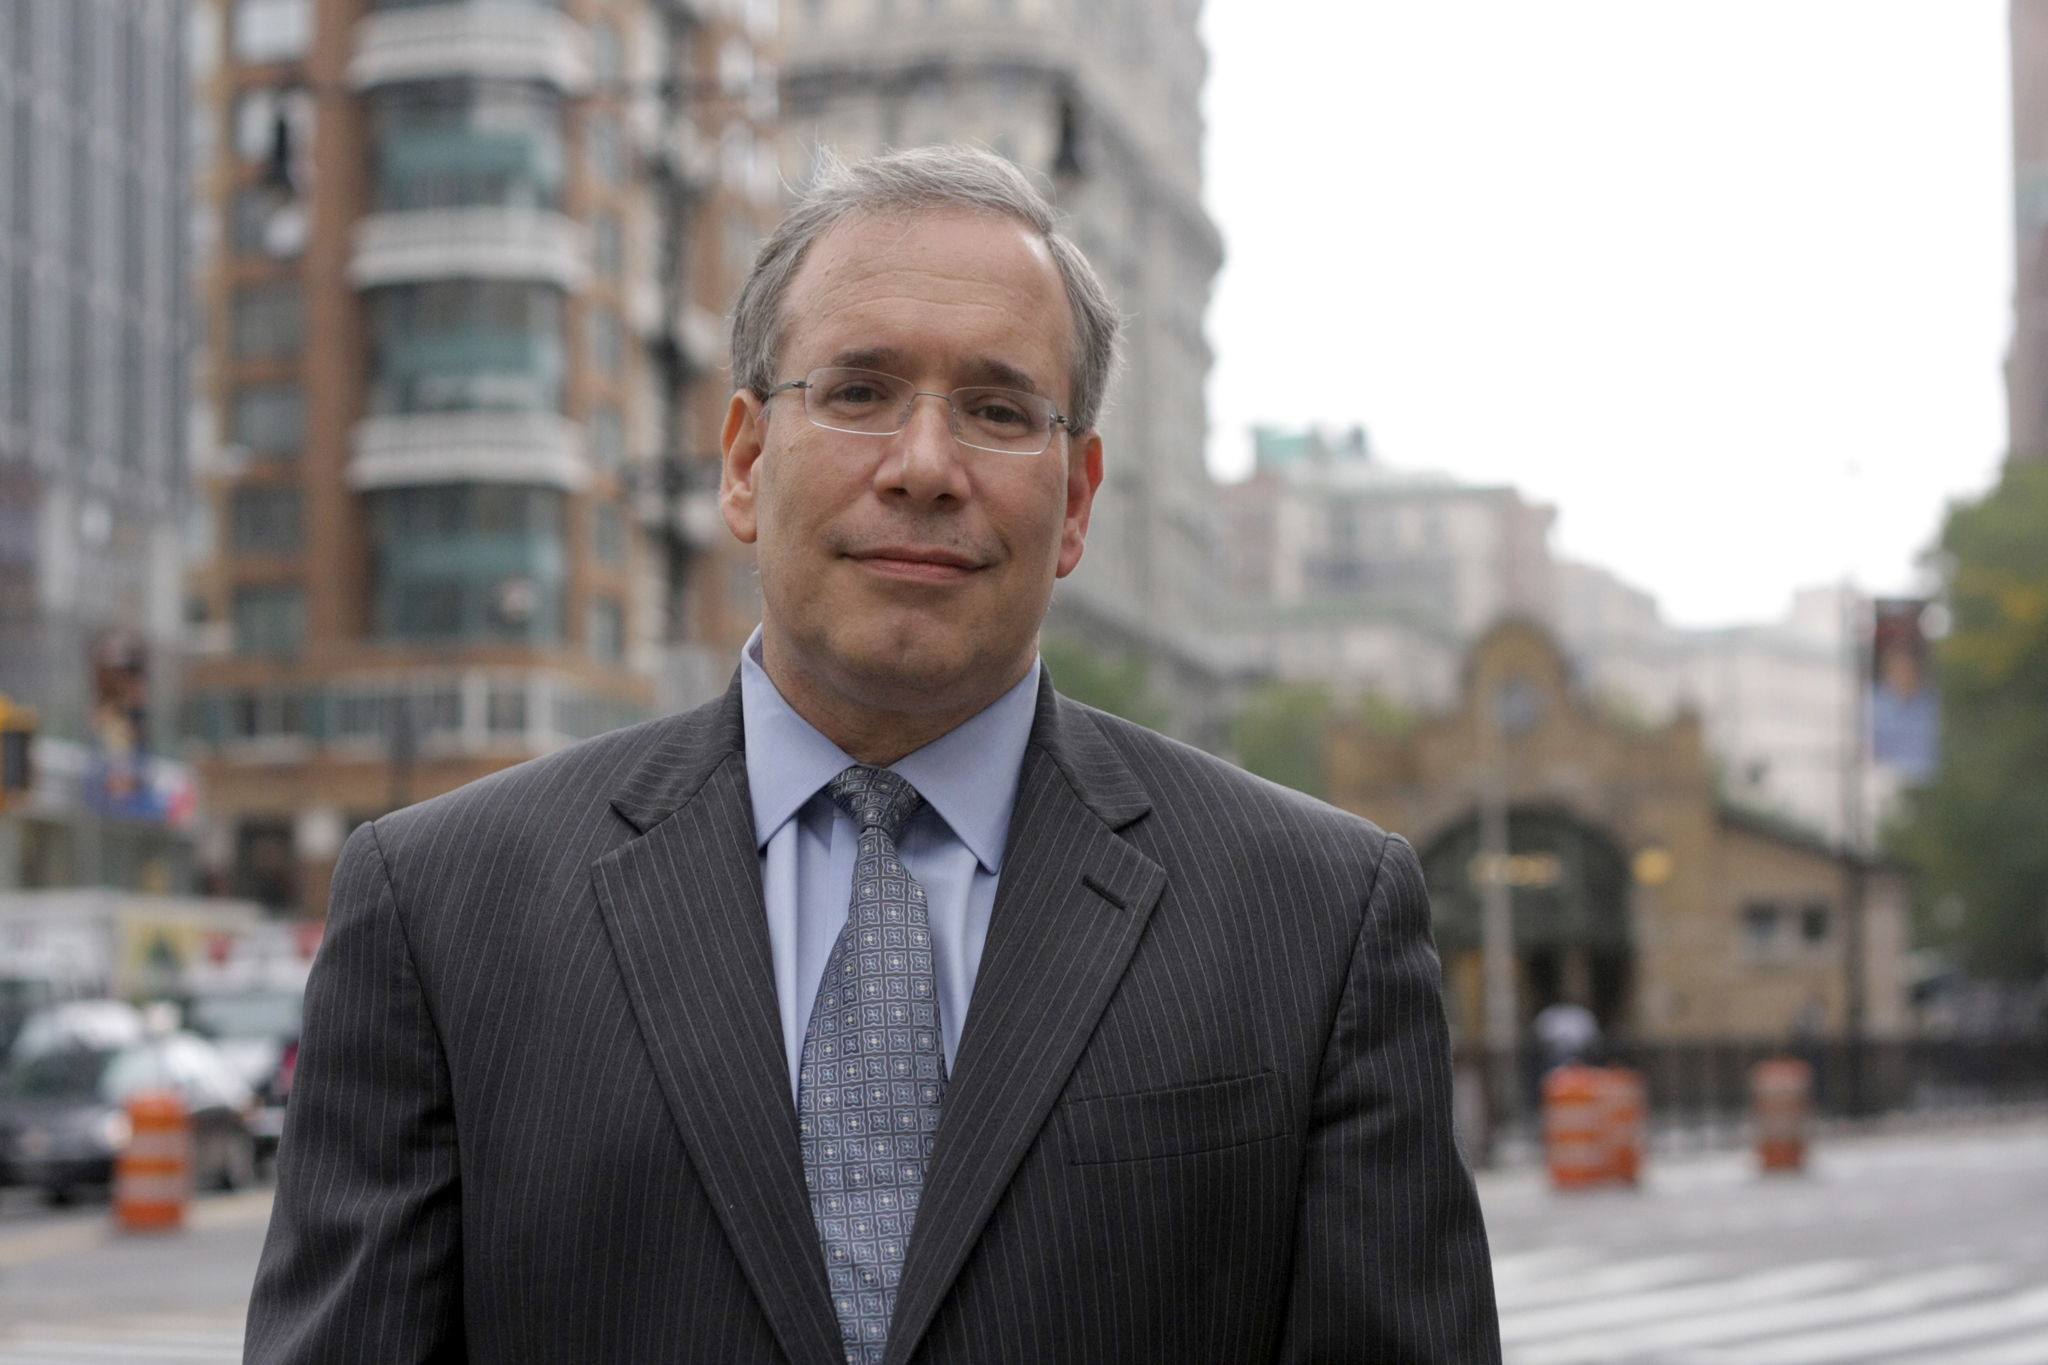 Scott Stringer, Manhattan borough president